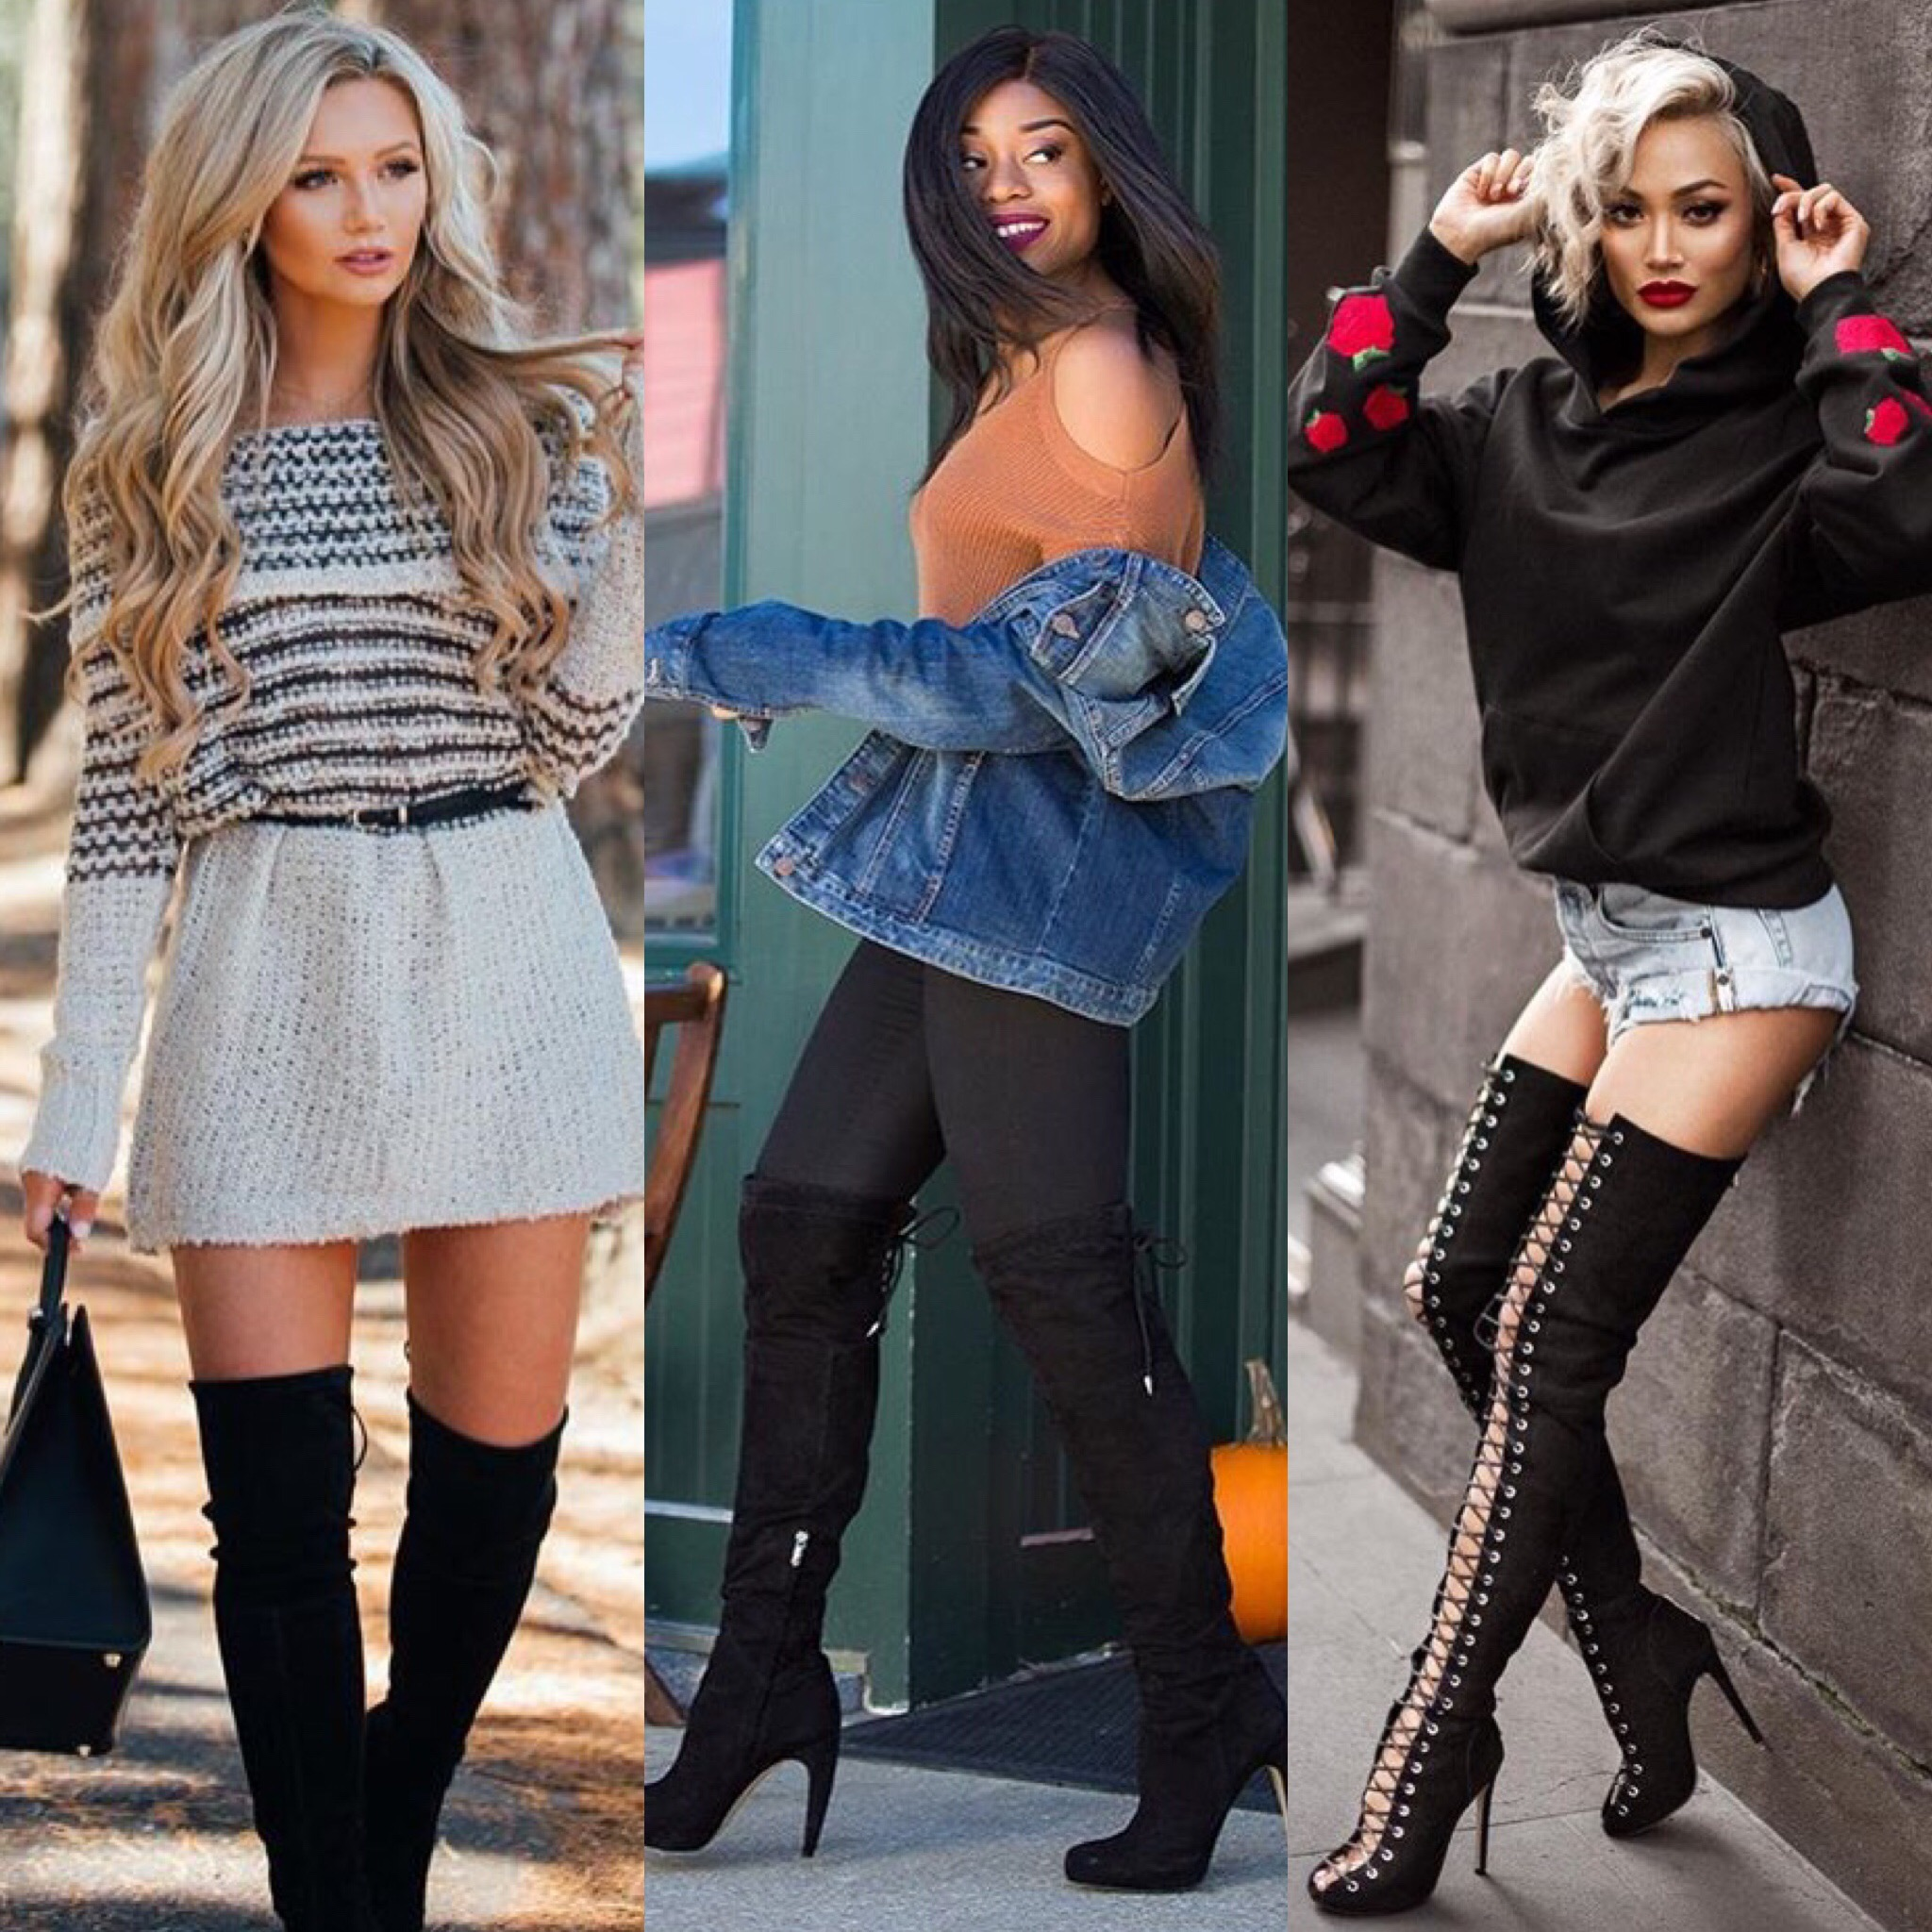 Fashion Trend: Over-The-Knee Boots